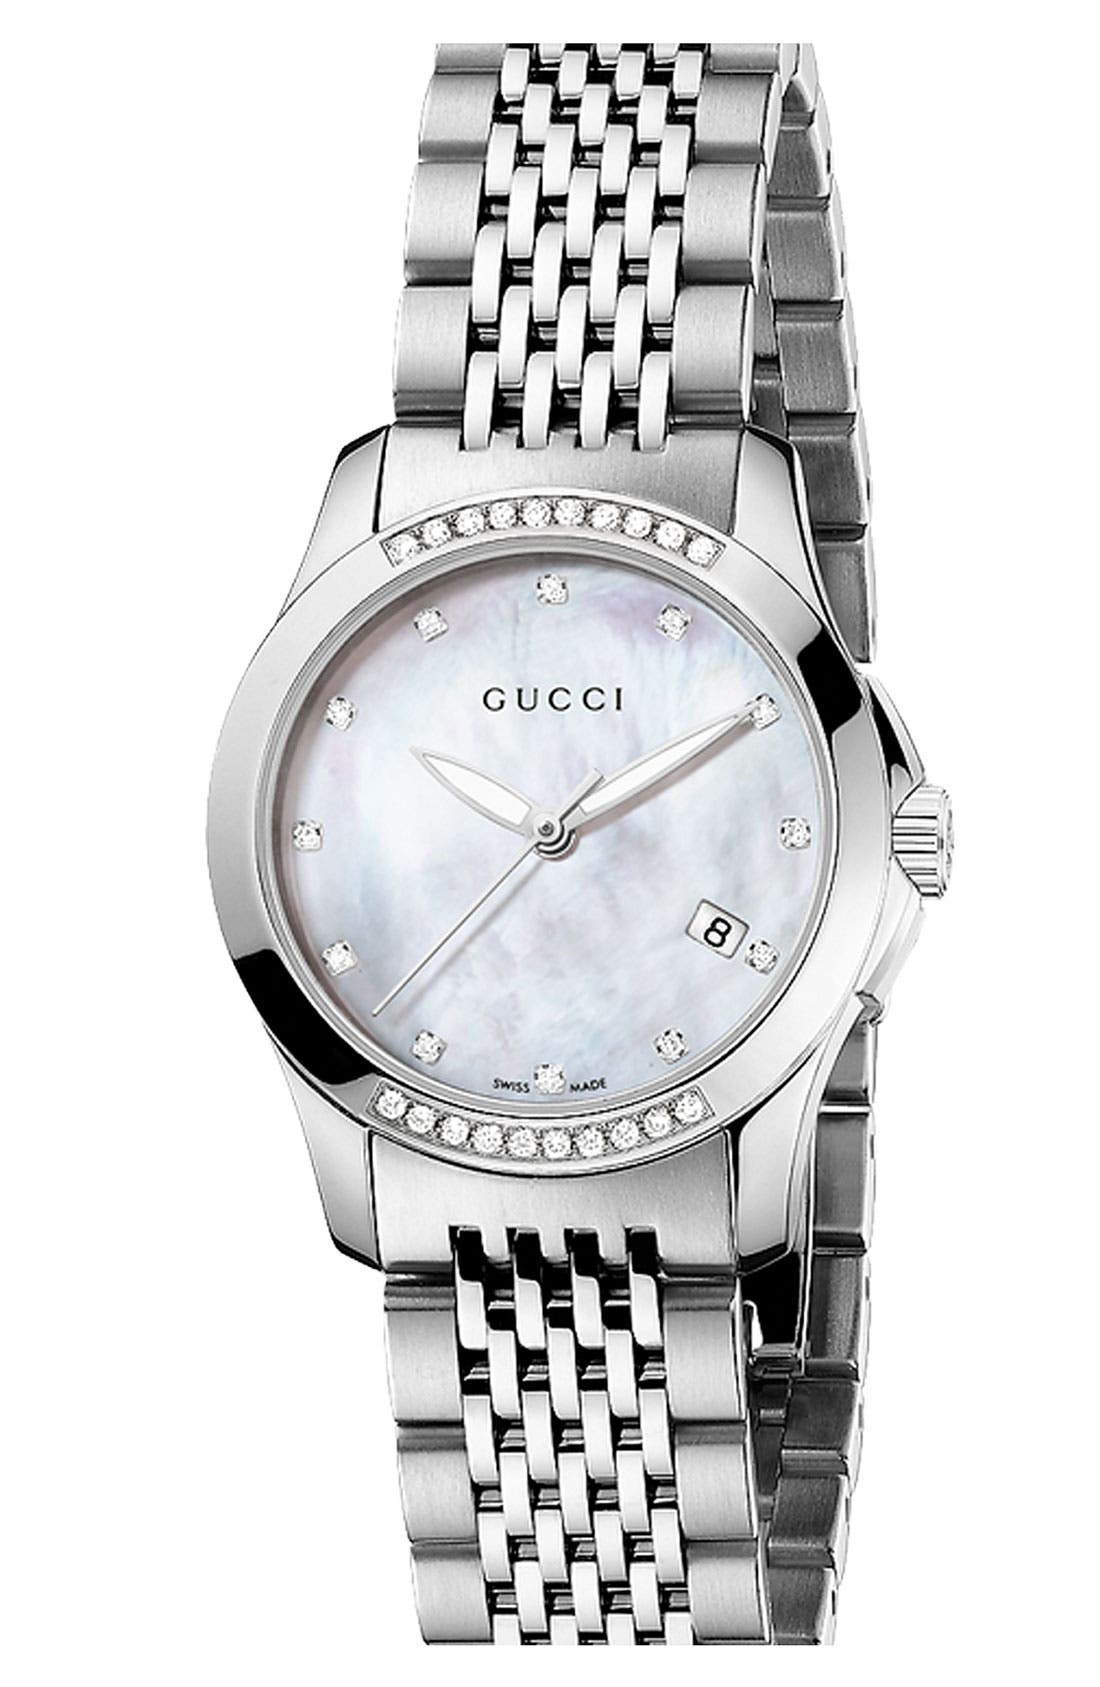 Main Image - Gucci 'G Timeless' Small Diamond Bracelet Watch, 27mm